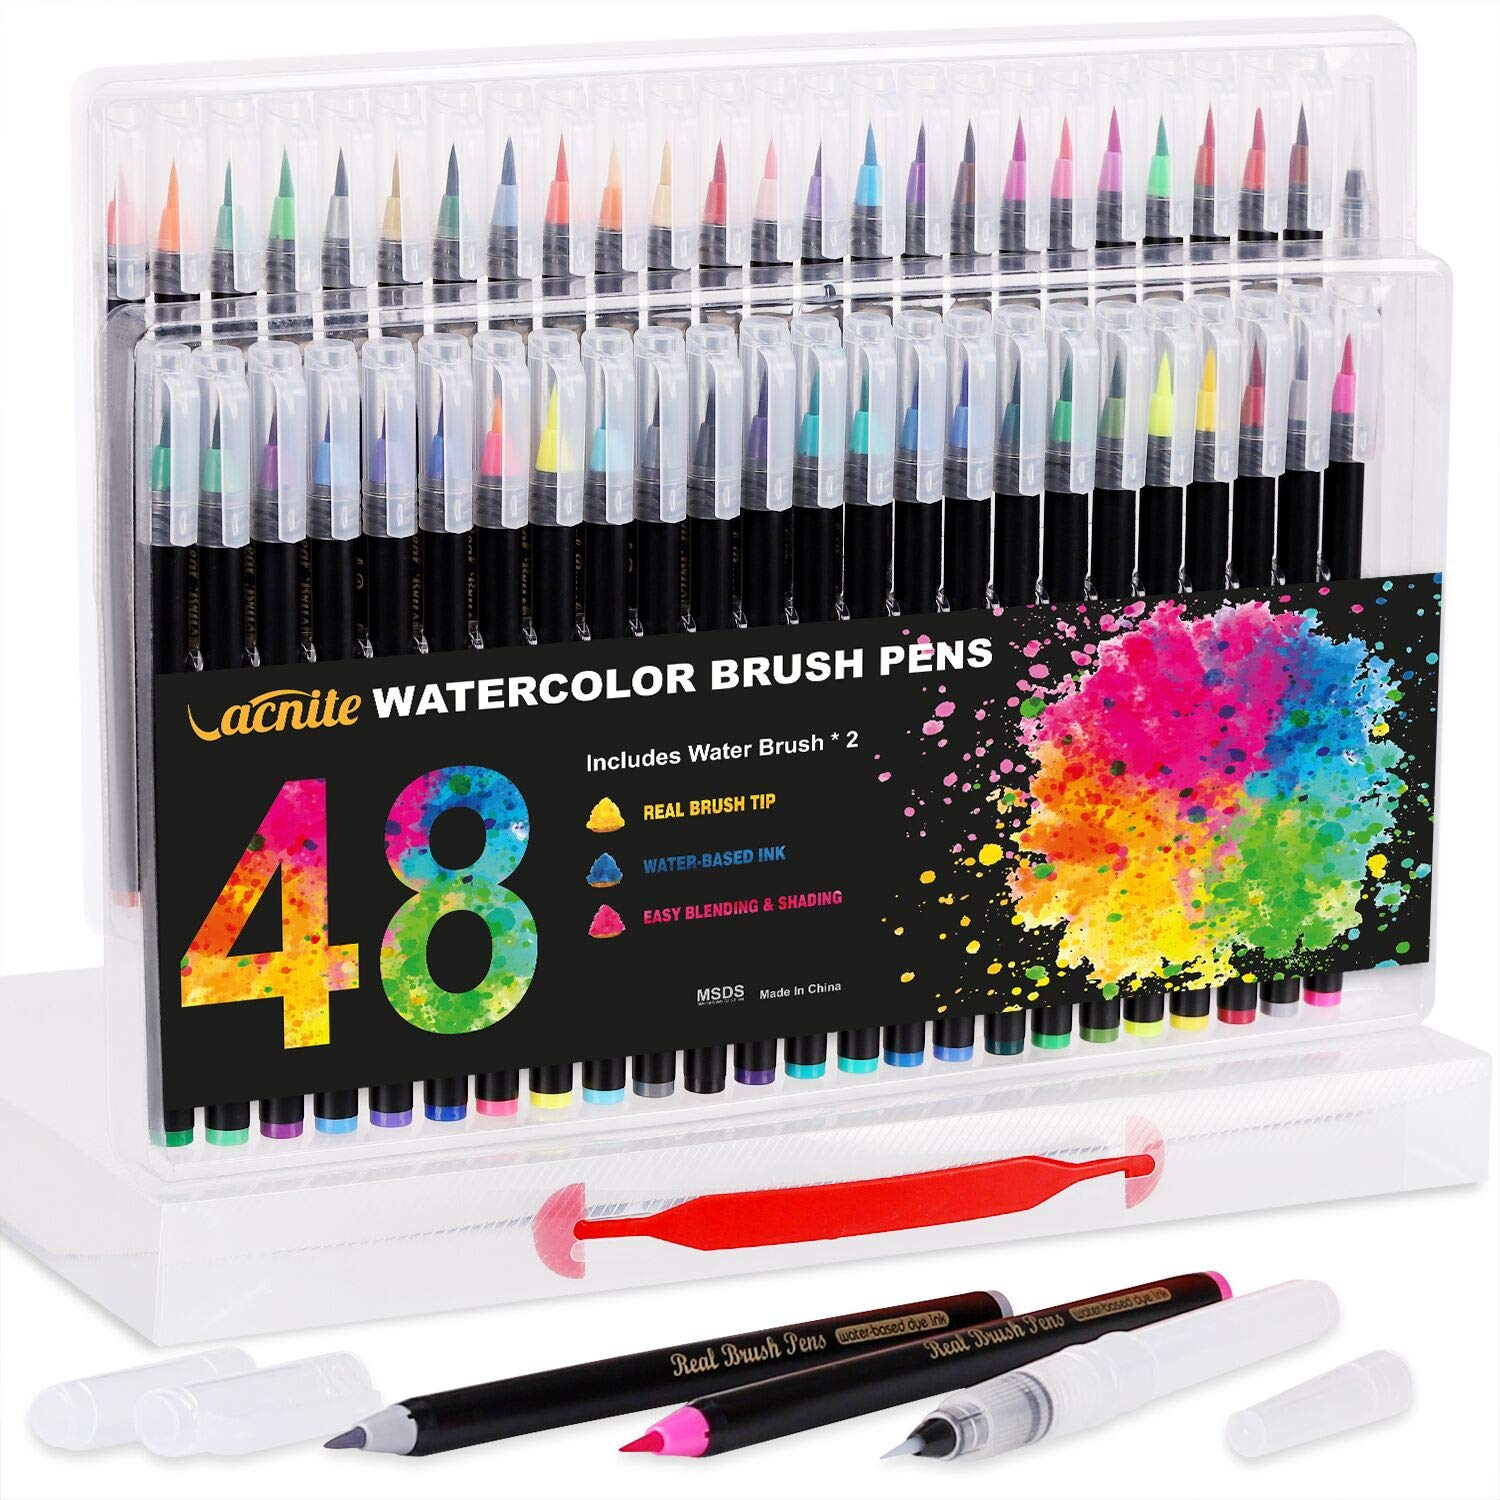 Vacnite Watercolor Brush Pens, Set of 48 Colors Watercolor Markers and 2 Water Pens, Flexible Real Brush Tips, Paint Pens for Artists, Beginners, Adults and Kids Coloring, Calligraphy and Drawing by VACNITE